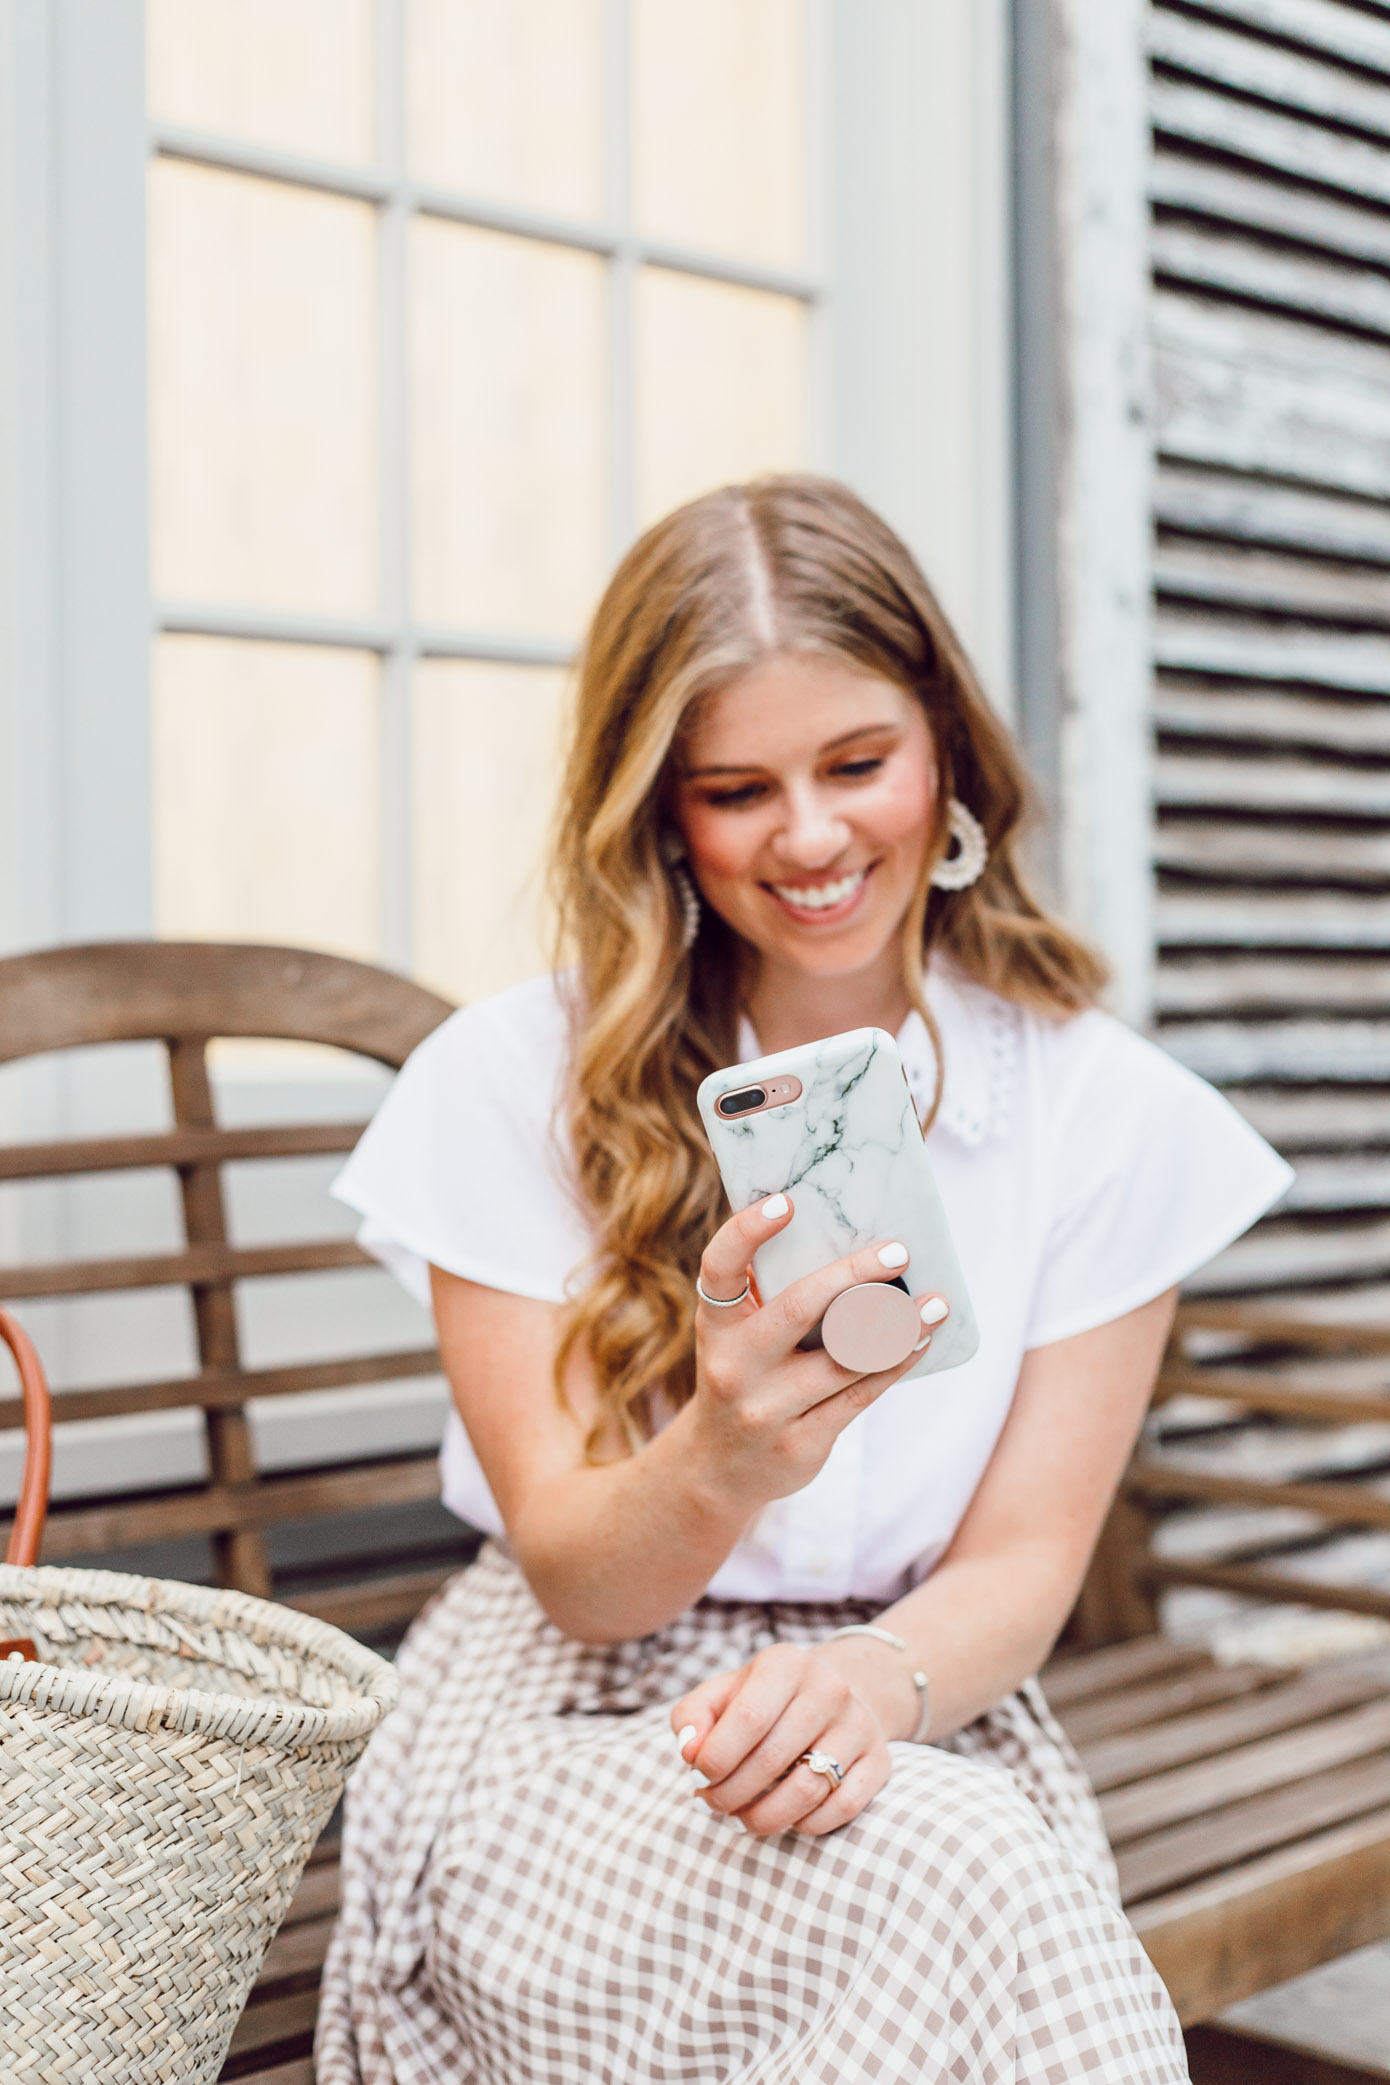 Instagram FAQs featured on Louella Reese